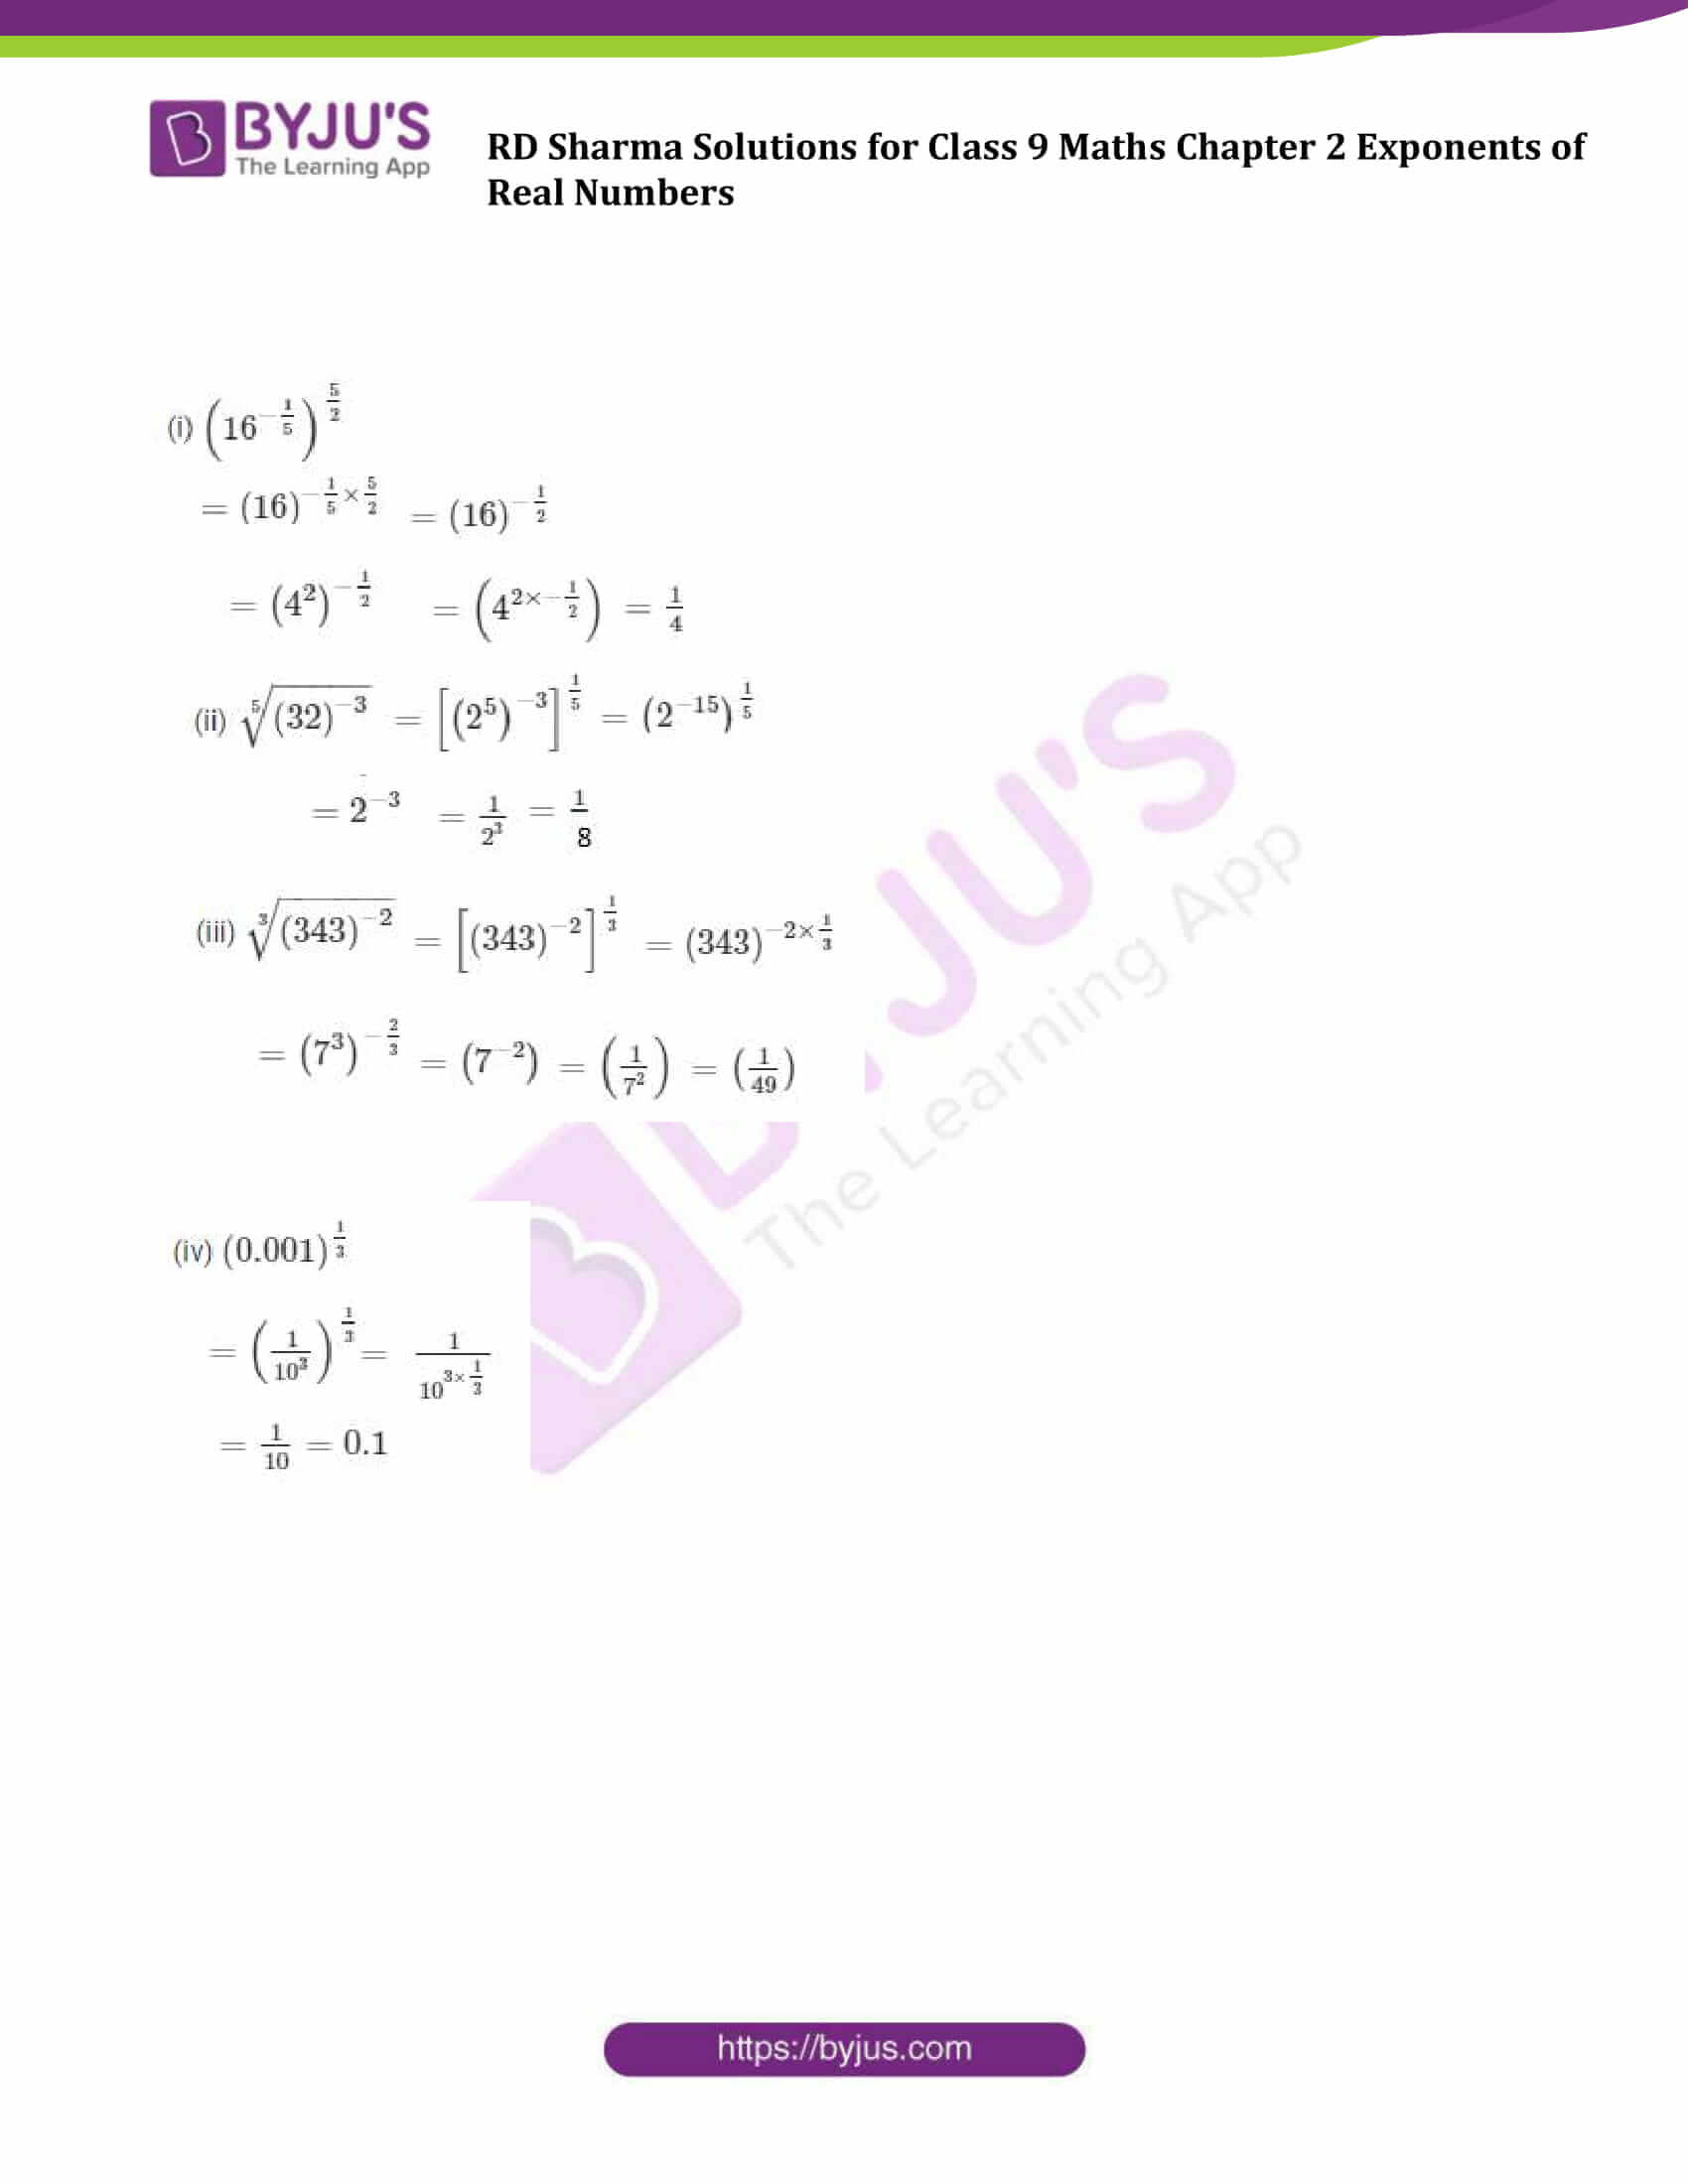 RD Sharma Solution class 9 Maths Chapter 2 Exponents of Real Numbers 12